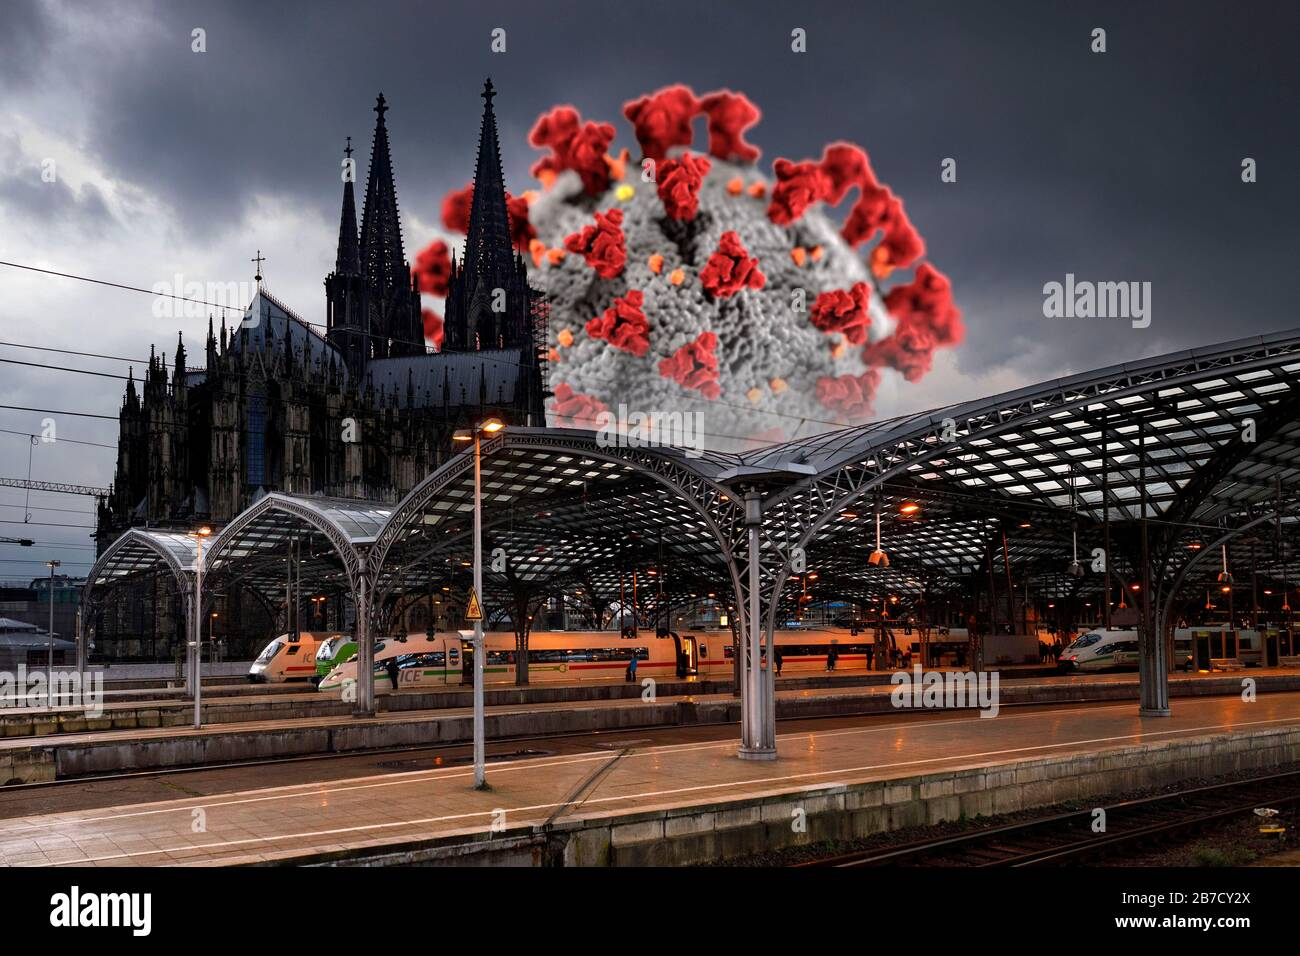 Corona cases in the population are increasing in North Rhine-Westphalia - in the picture the Cologne main station with cathedral (using a graphic from the CDC released under public domain). Stock Photo